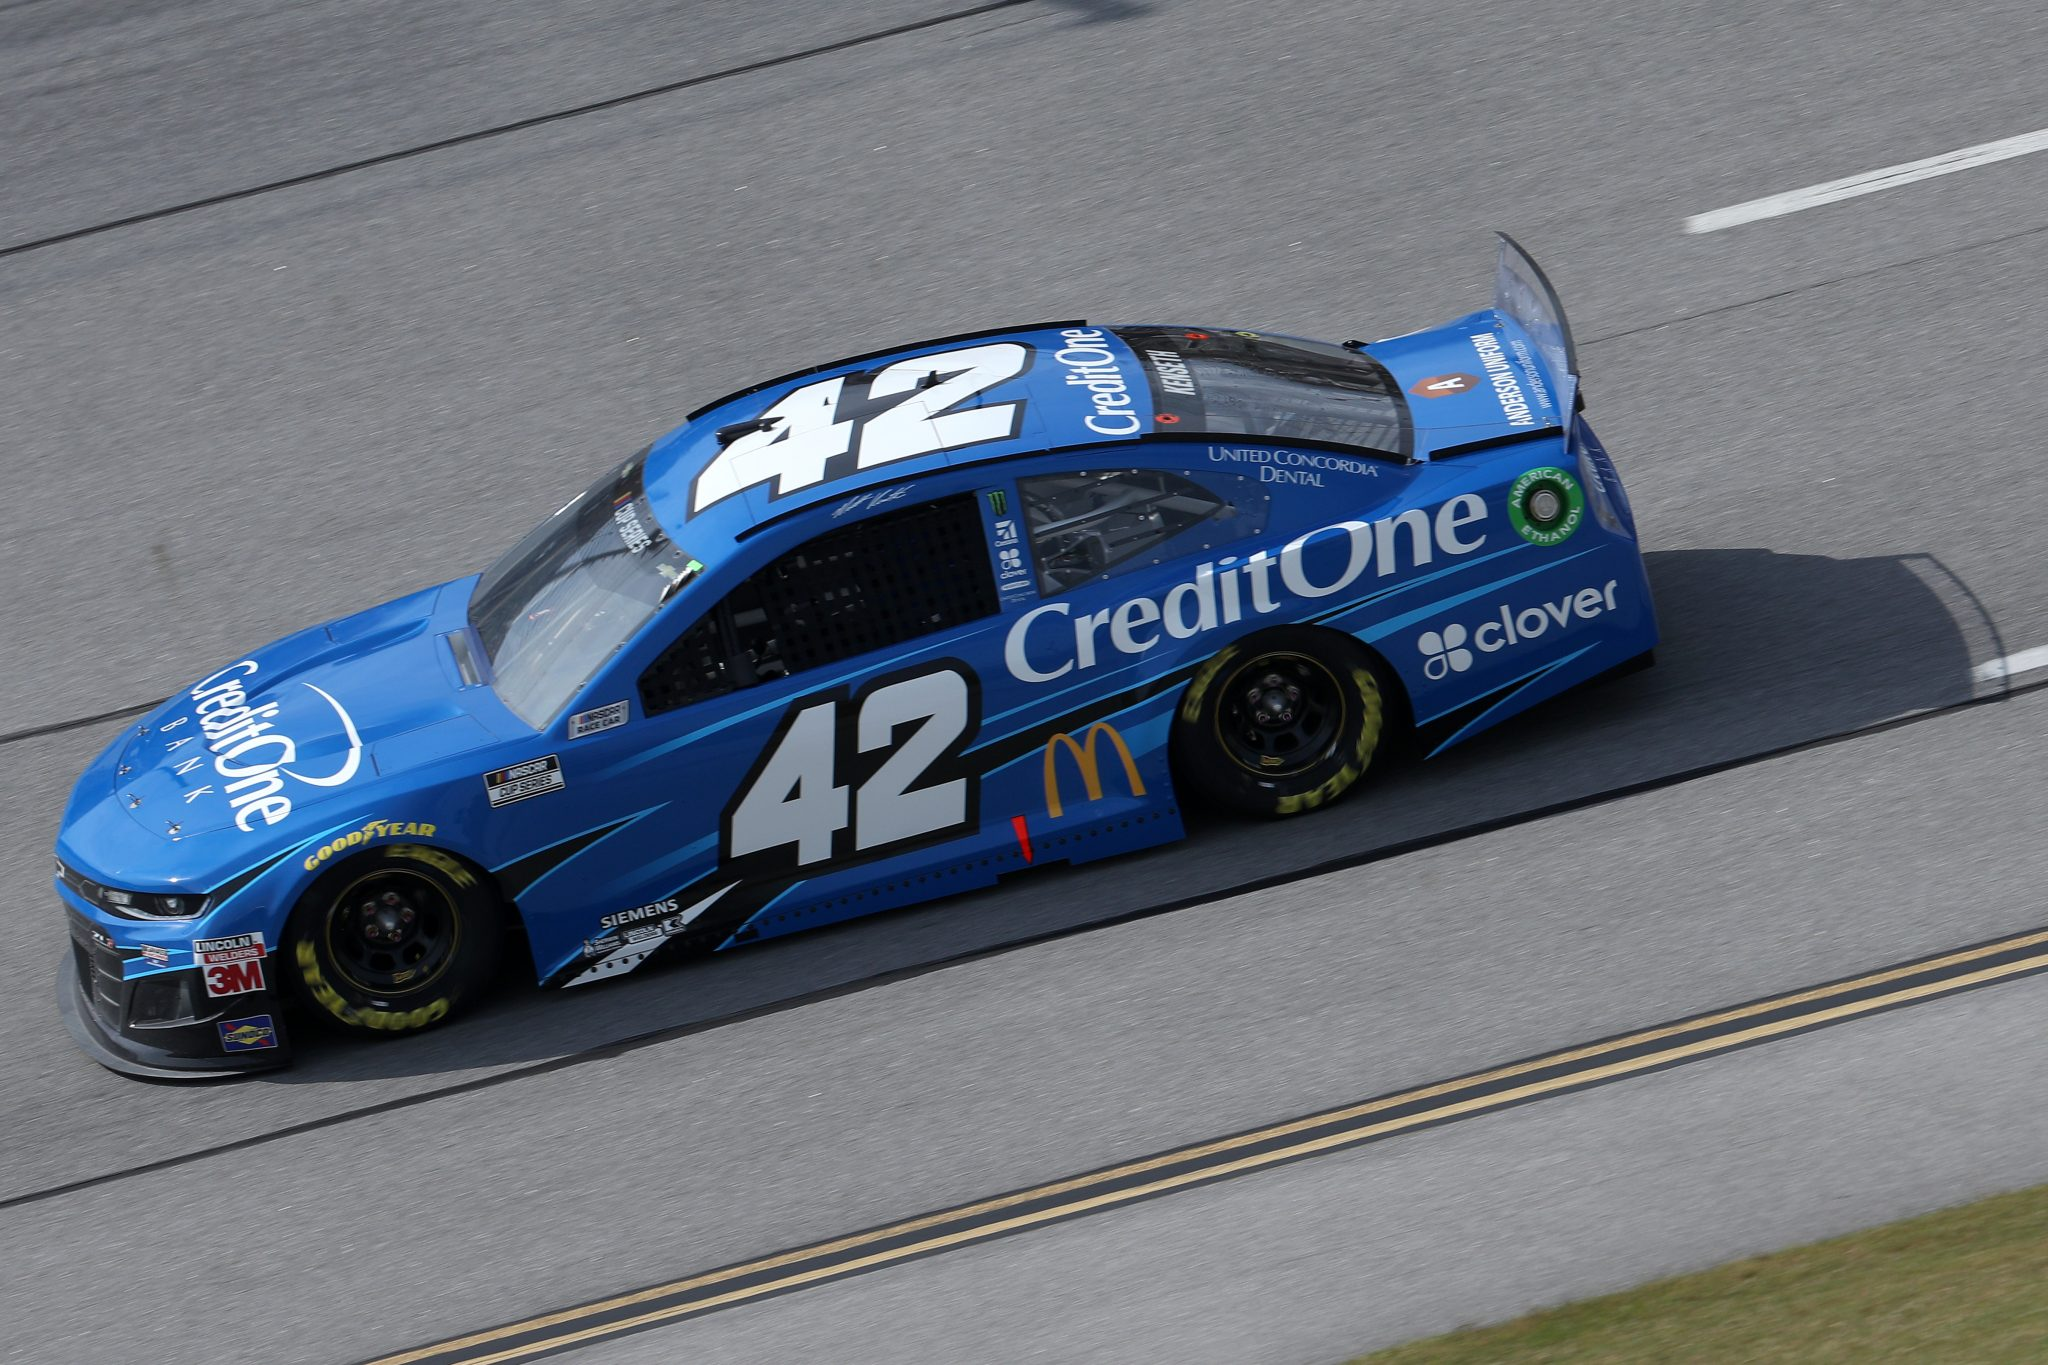 TALLADEGA, ALABAMA - OCTOBER 04: Matt Kenseth, driver of the #42 Credit One Bank Chevrolet, drives during the NASCAR Cup Series YellaWood 500 at Talladega Superspeedway on October 04, 2020 in Talladega, Alabama. (Photo by Chris Graythen/Getty Images) | Getty Images